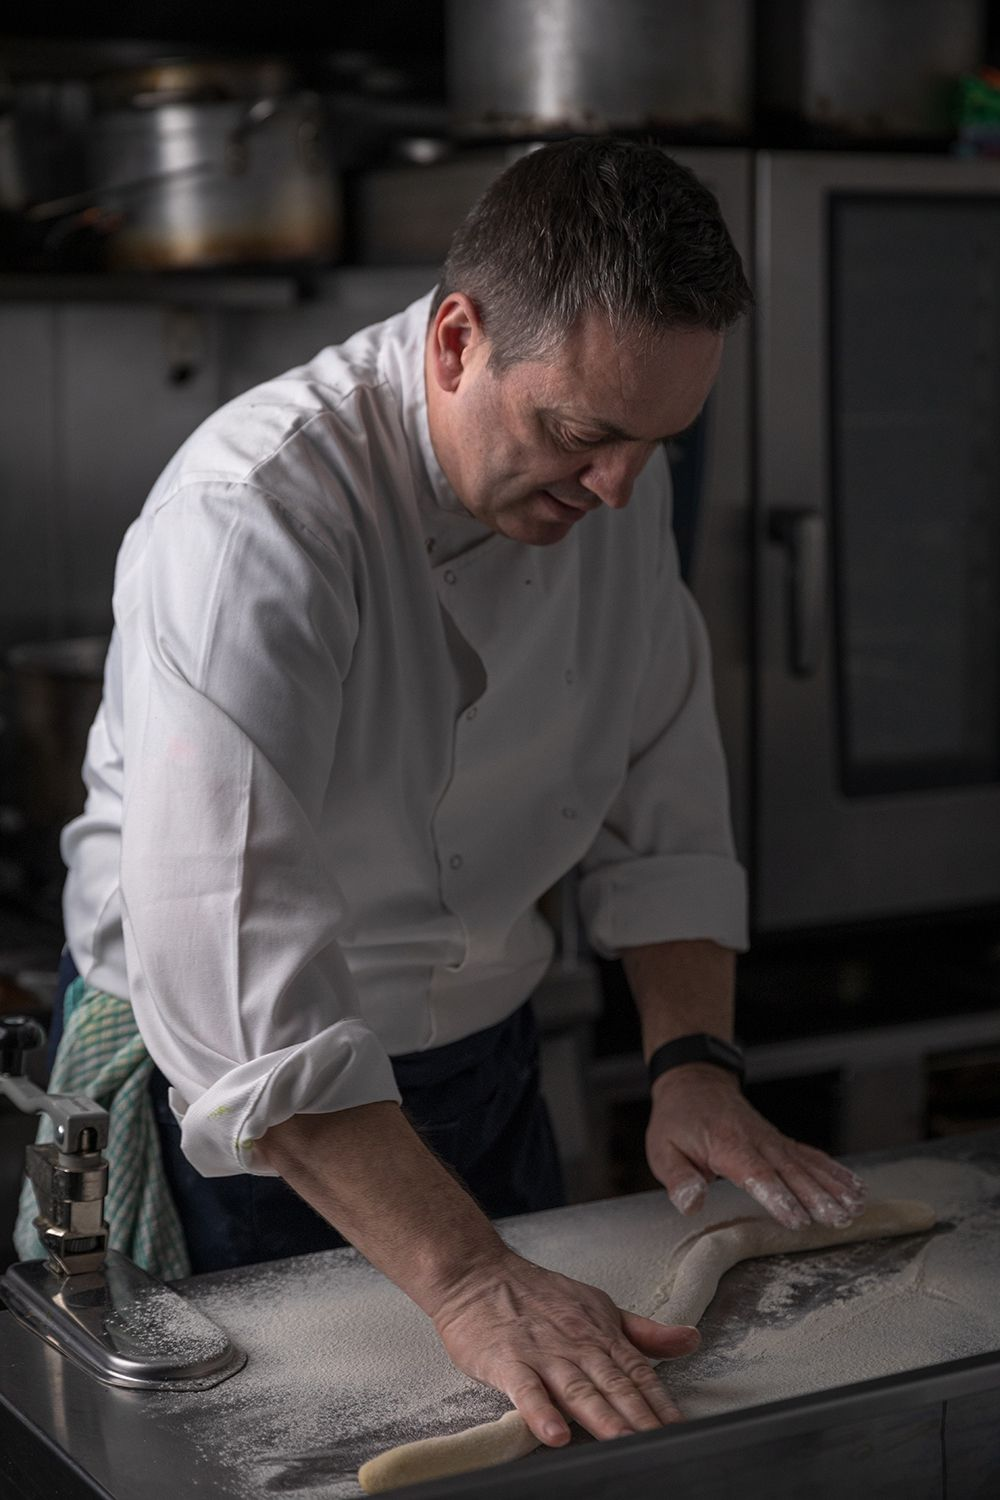 Chef Liam Moloughney of Monck's Green making homemade gnocchi. Photo by Ruth Calder-Potts.